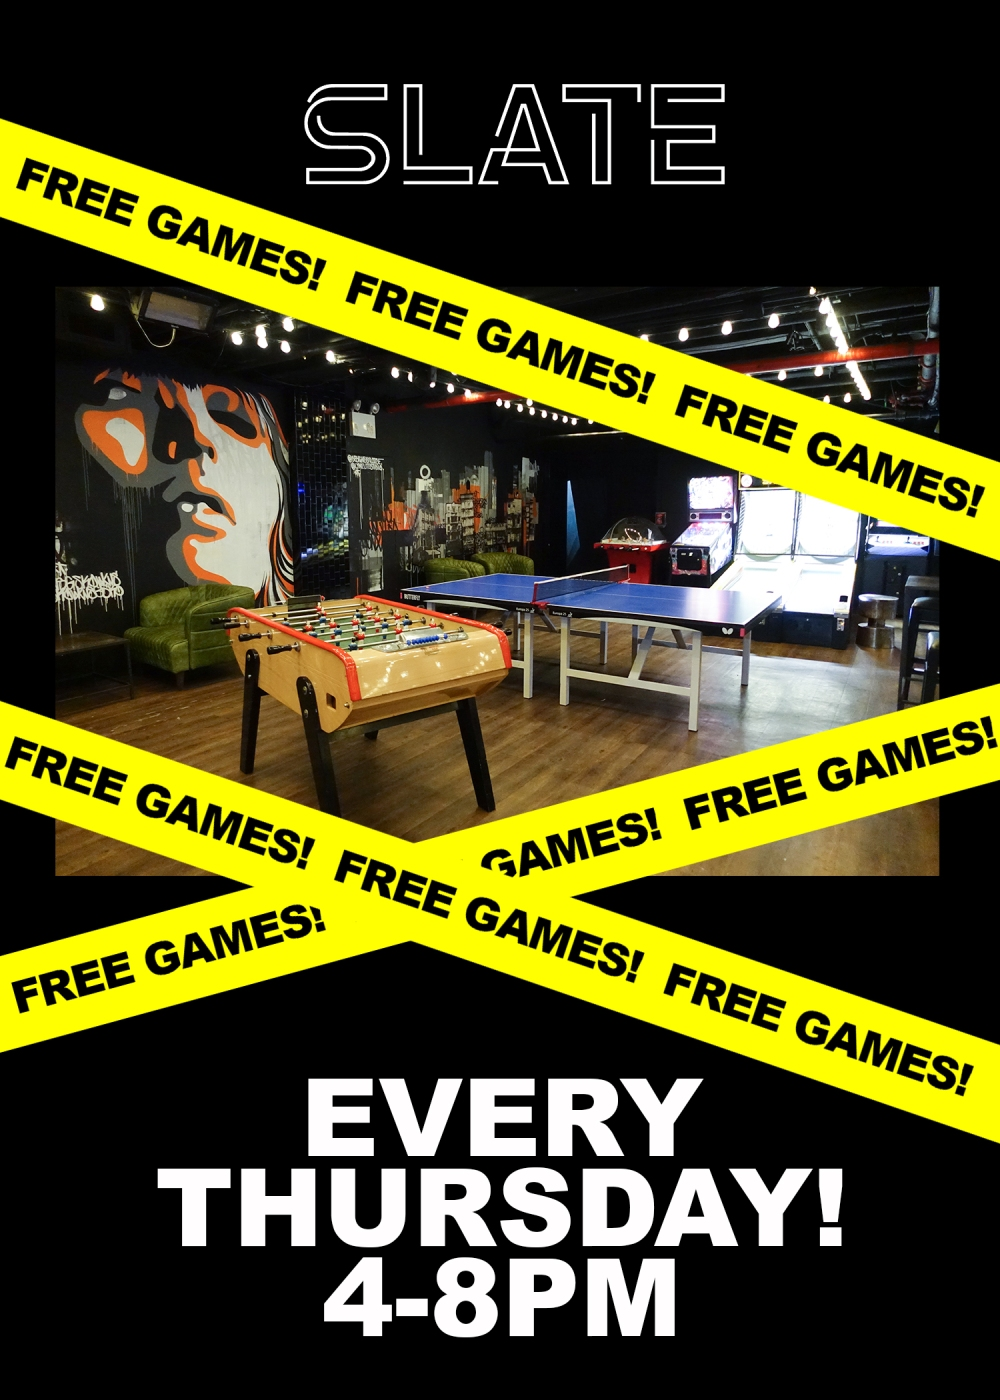 20180111 Slate free games flyer